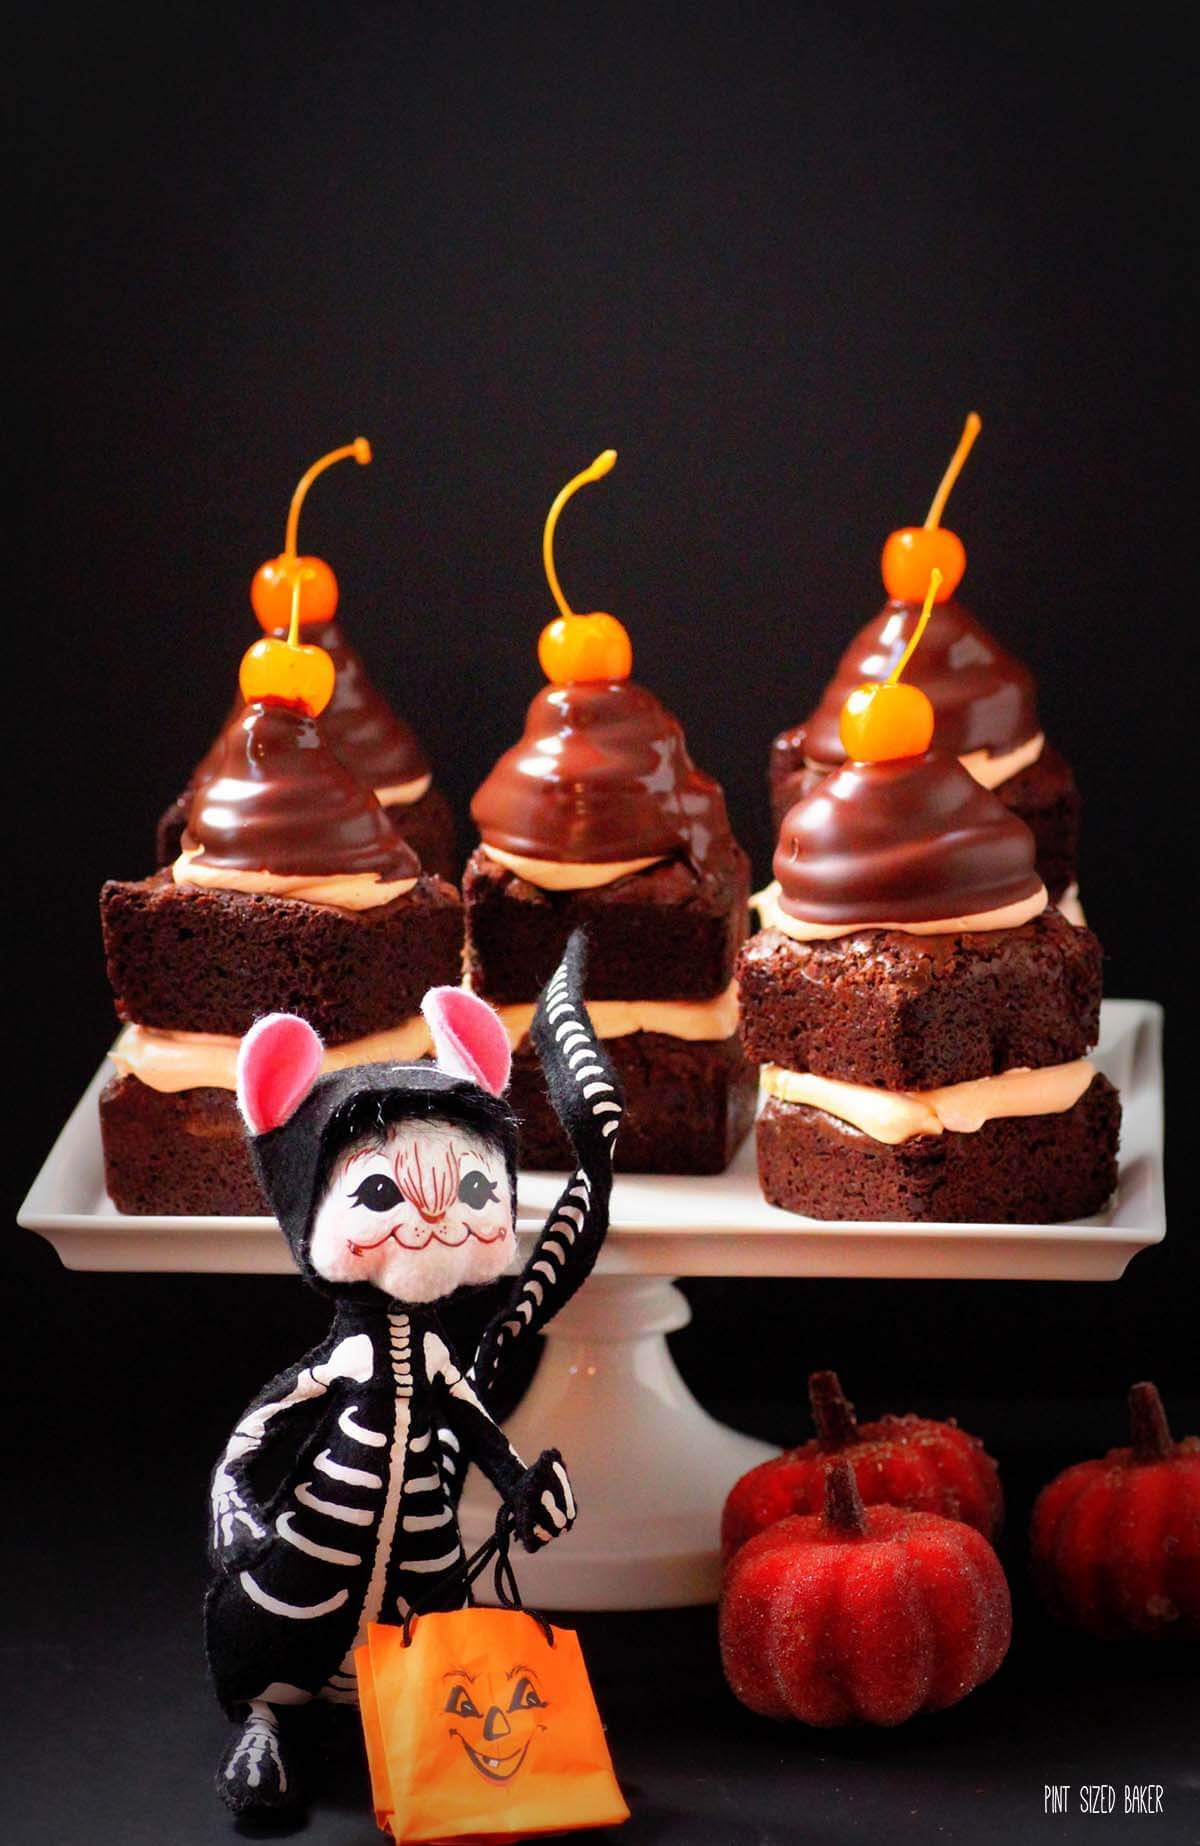 Layered brownies with marshmallow fluff frosting and dipped into chocolate. These High Hat Brownies are sure to please your sweet tooth.